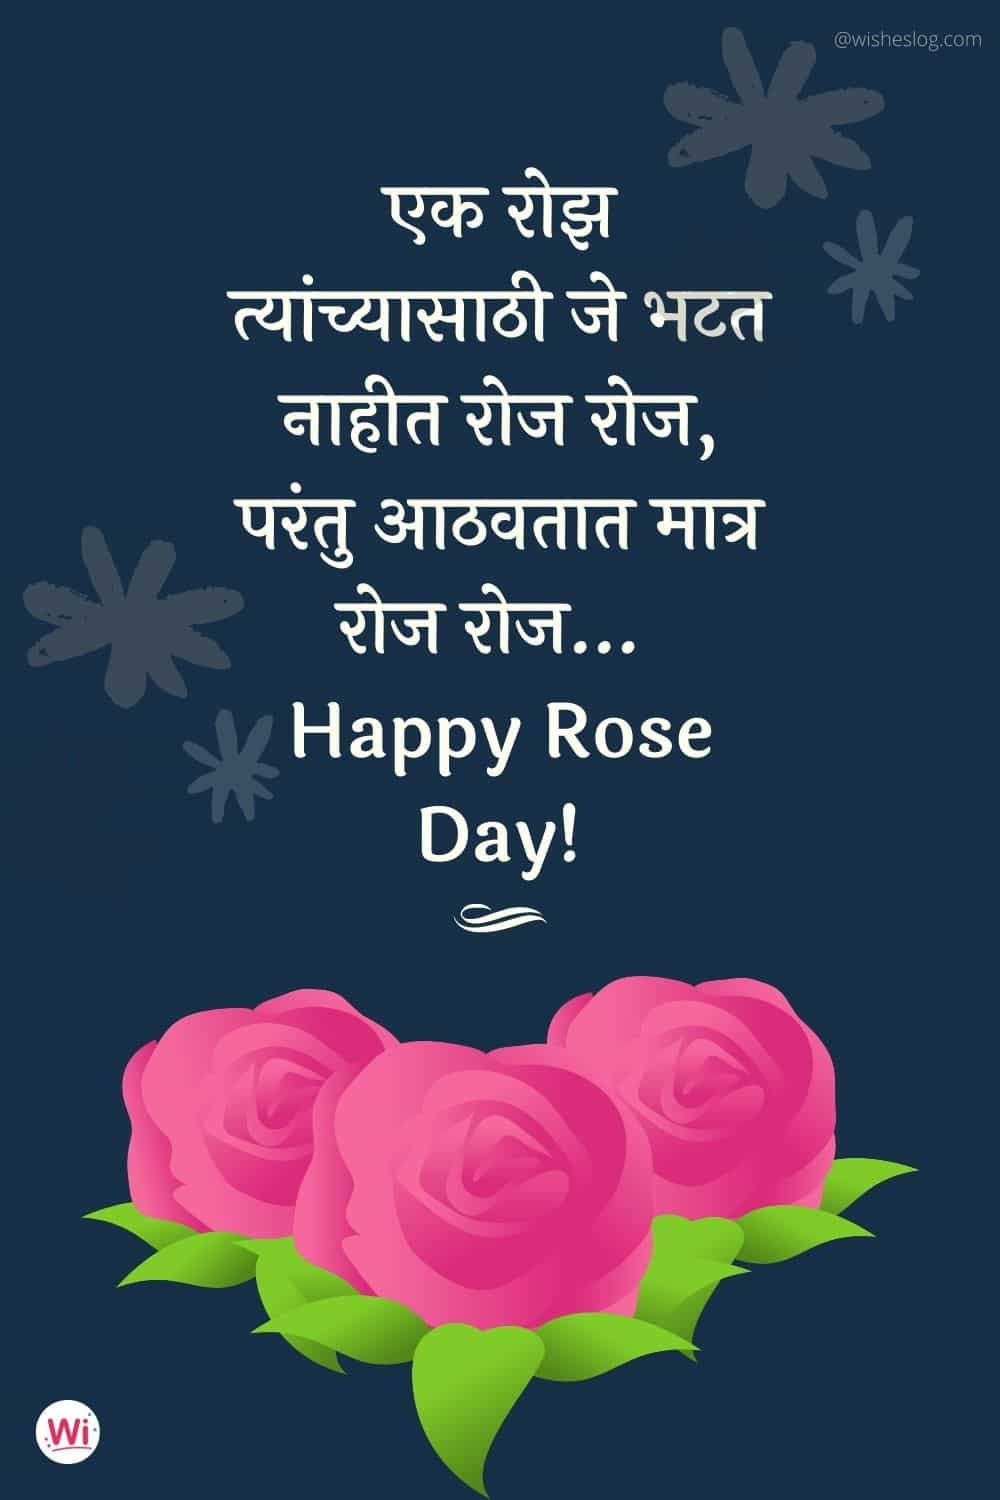 rose day messages for friends in marathi